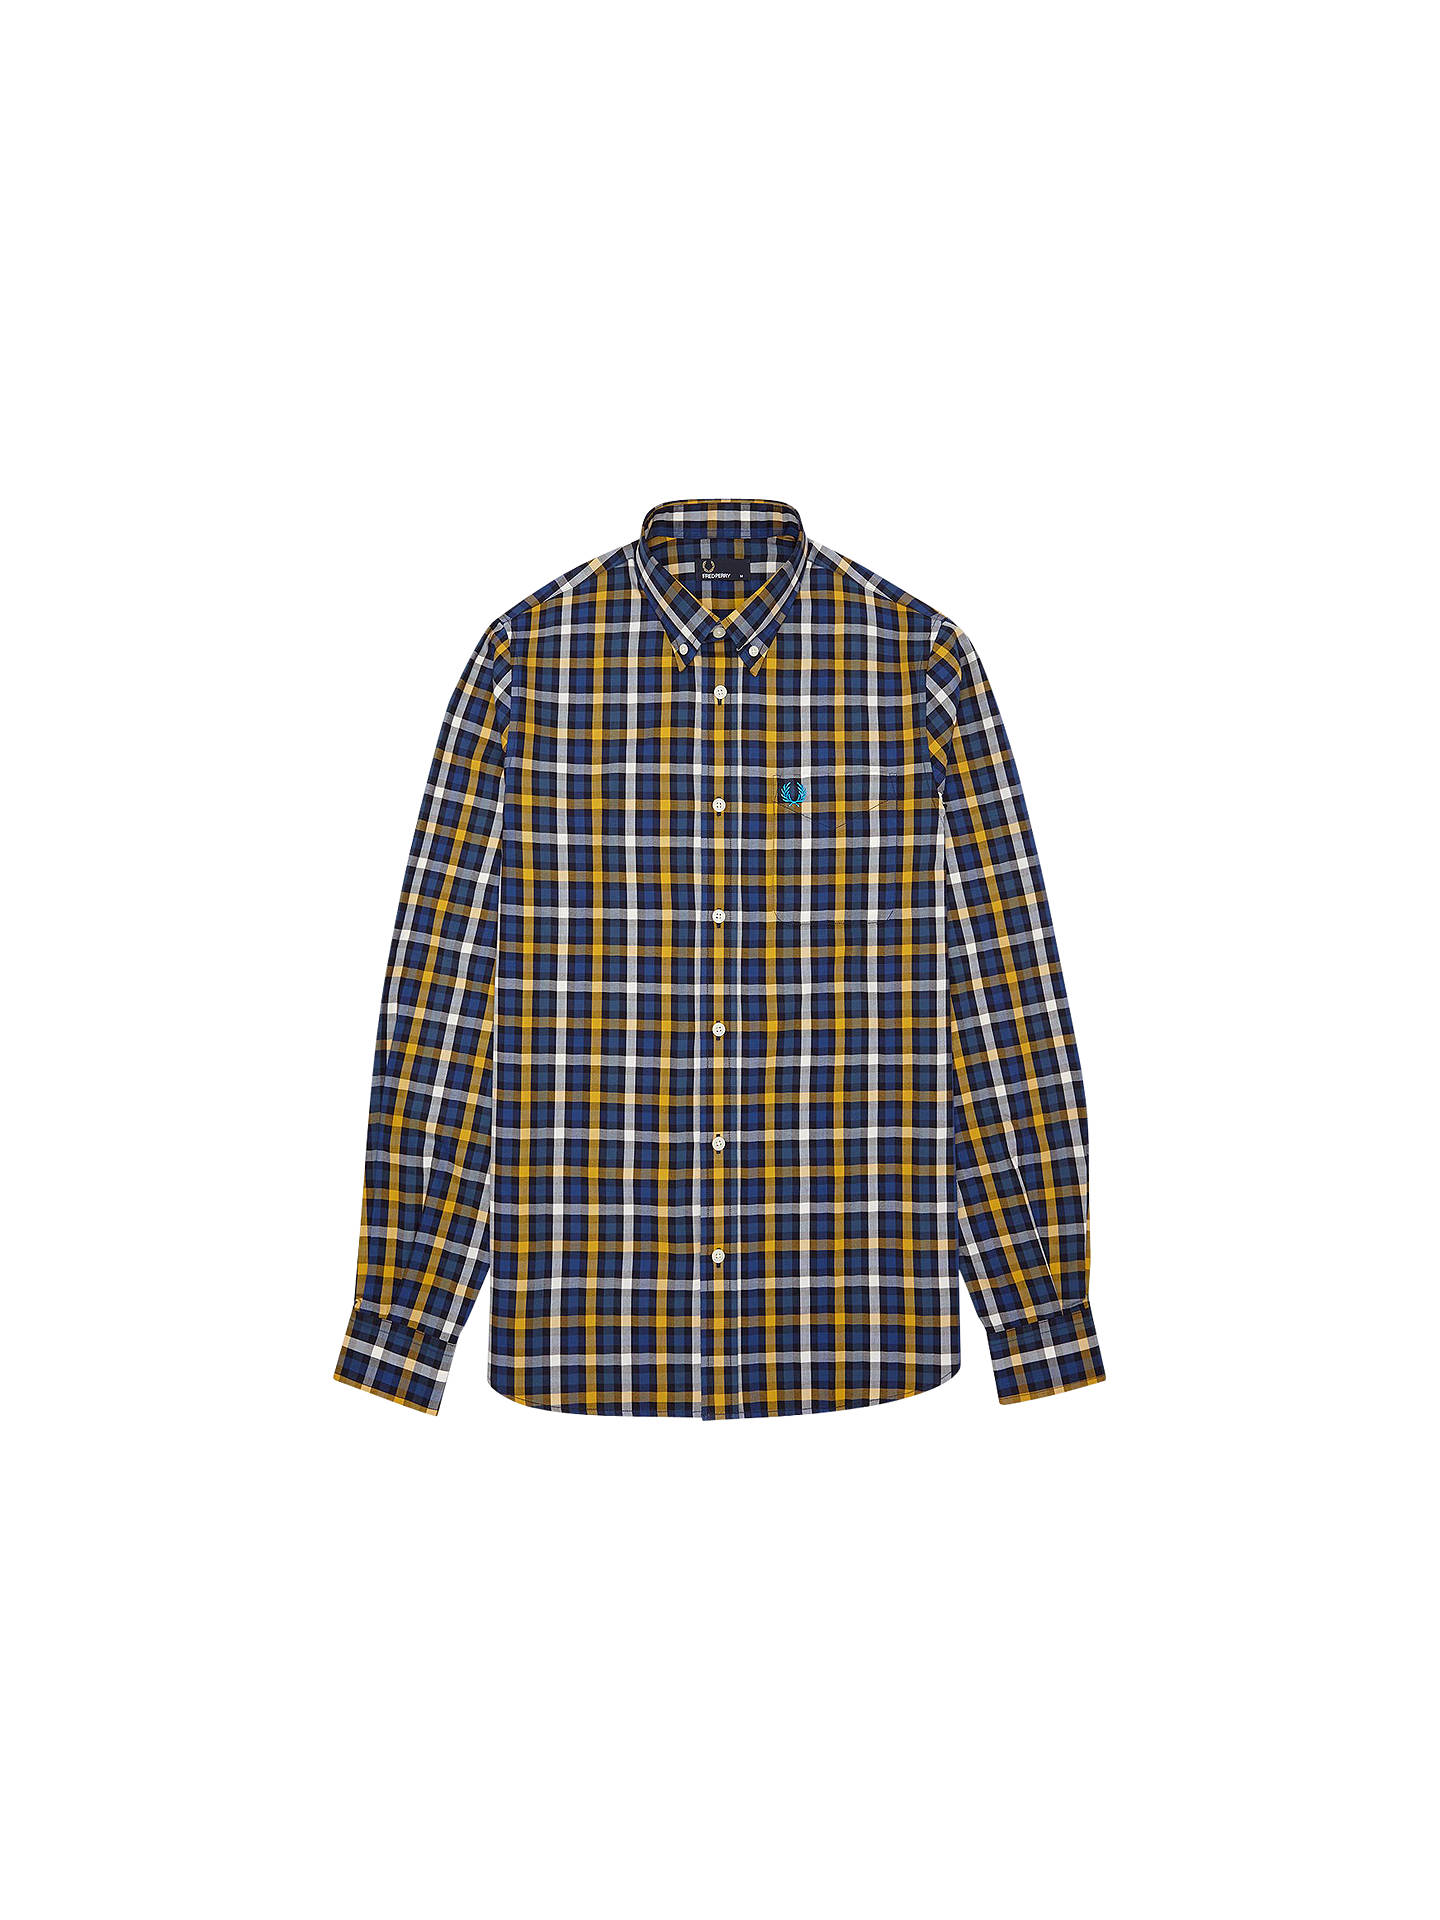 9e126bca Buy Fred Perry Herringbone Large Check Shirt, Navy, S Online at  johnlewis.com ...